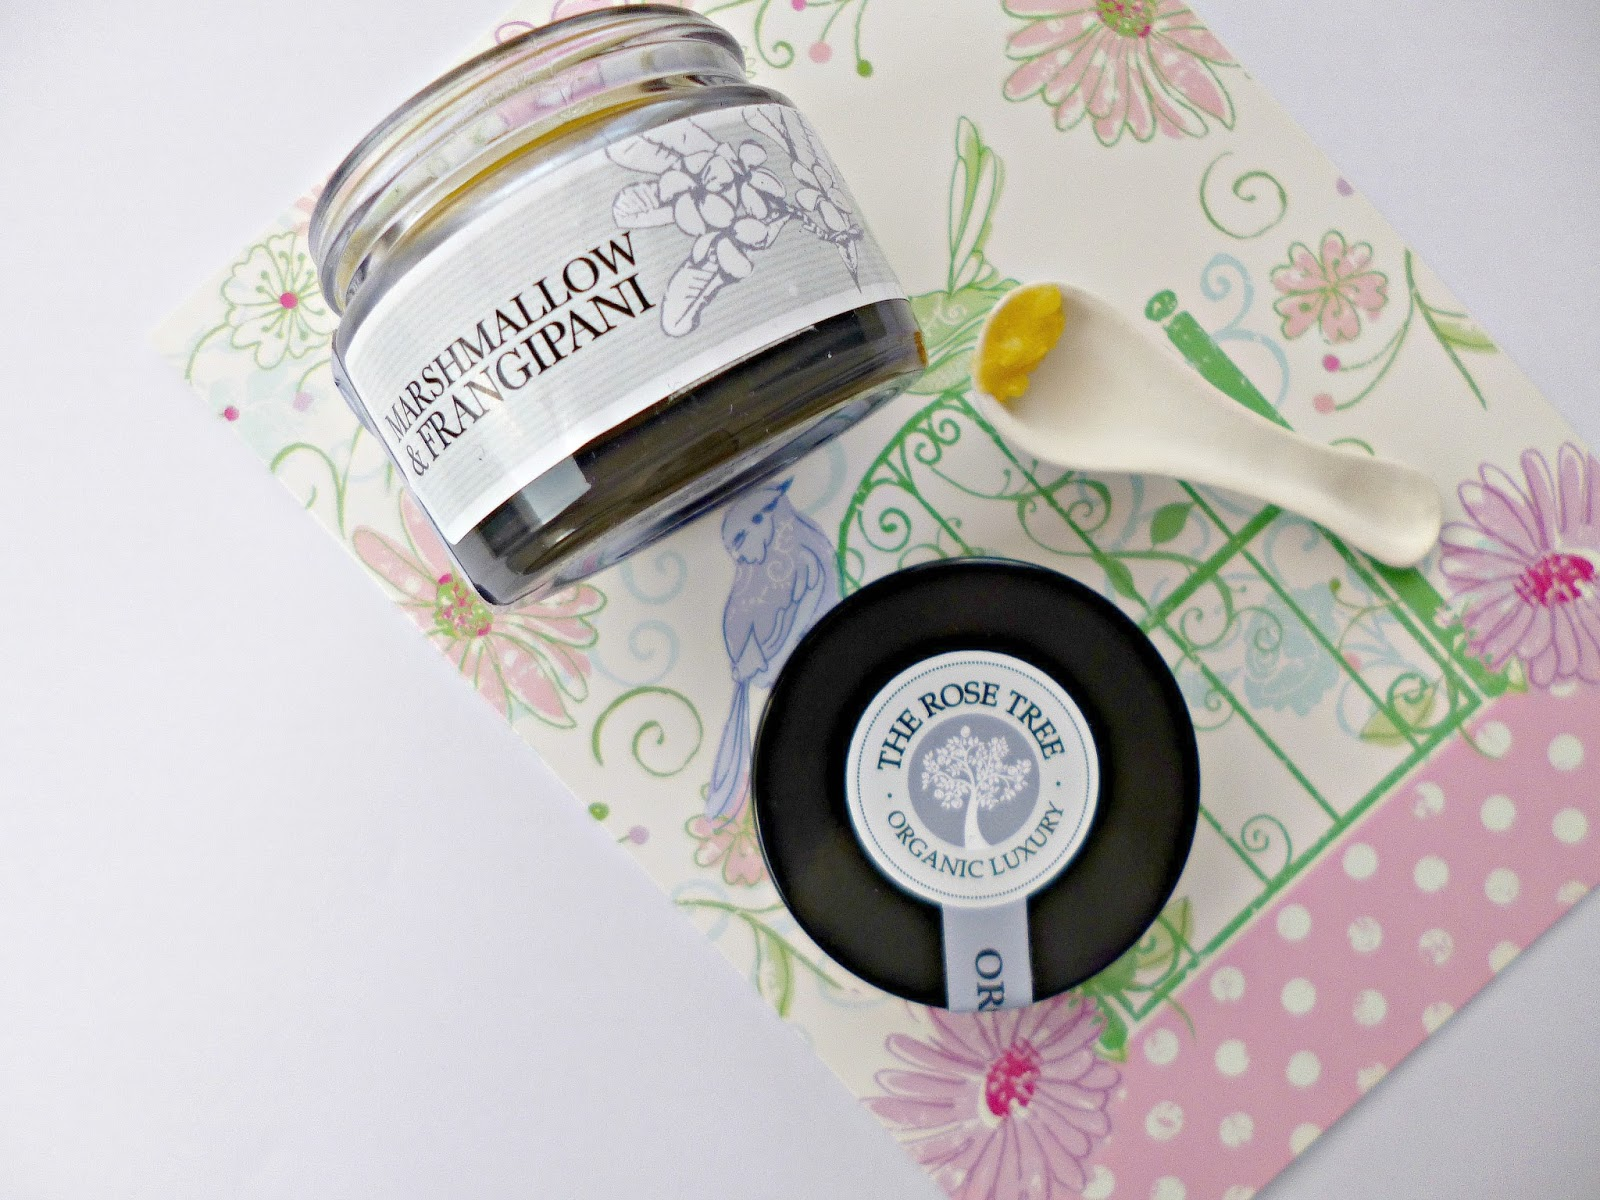 New in: The Rose Tree Intensive balm with Marshmallow and Frangipani